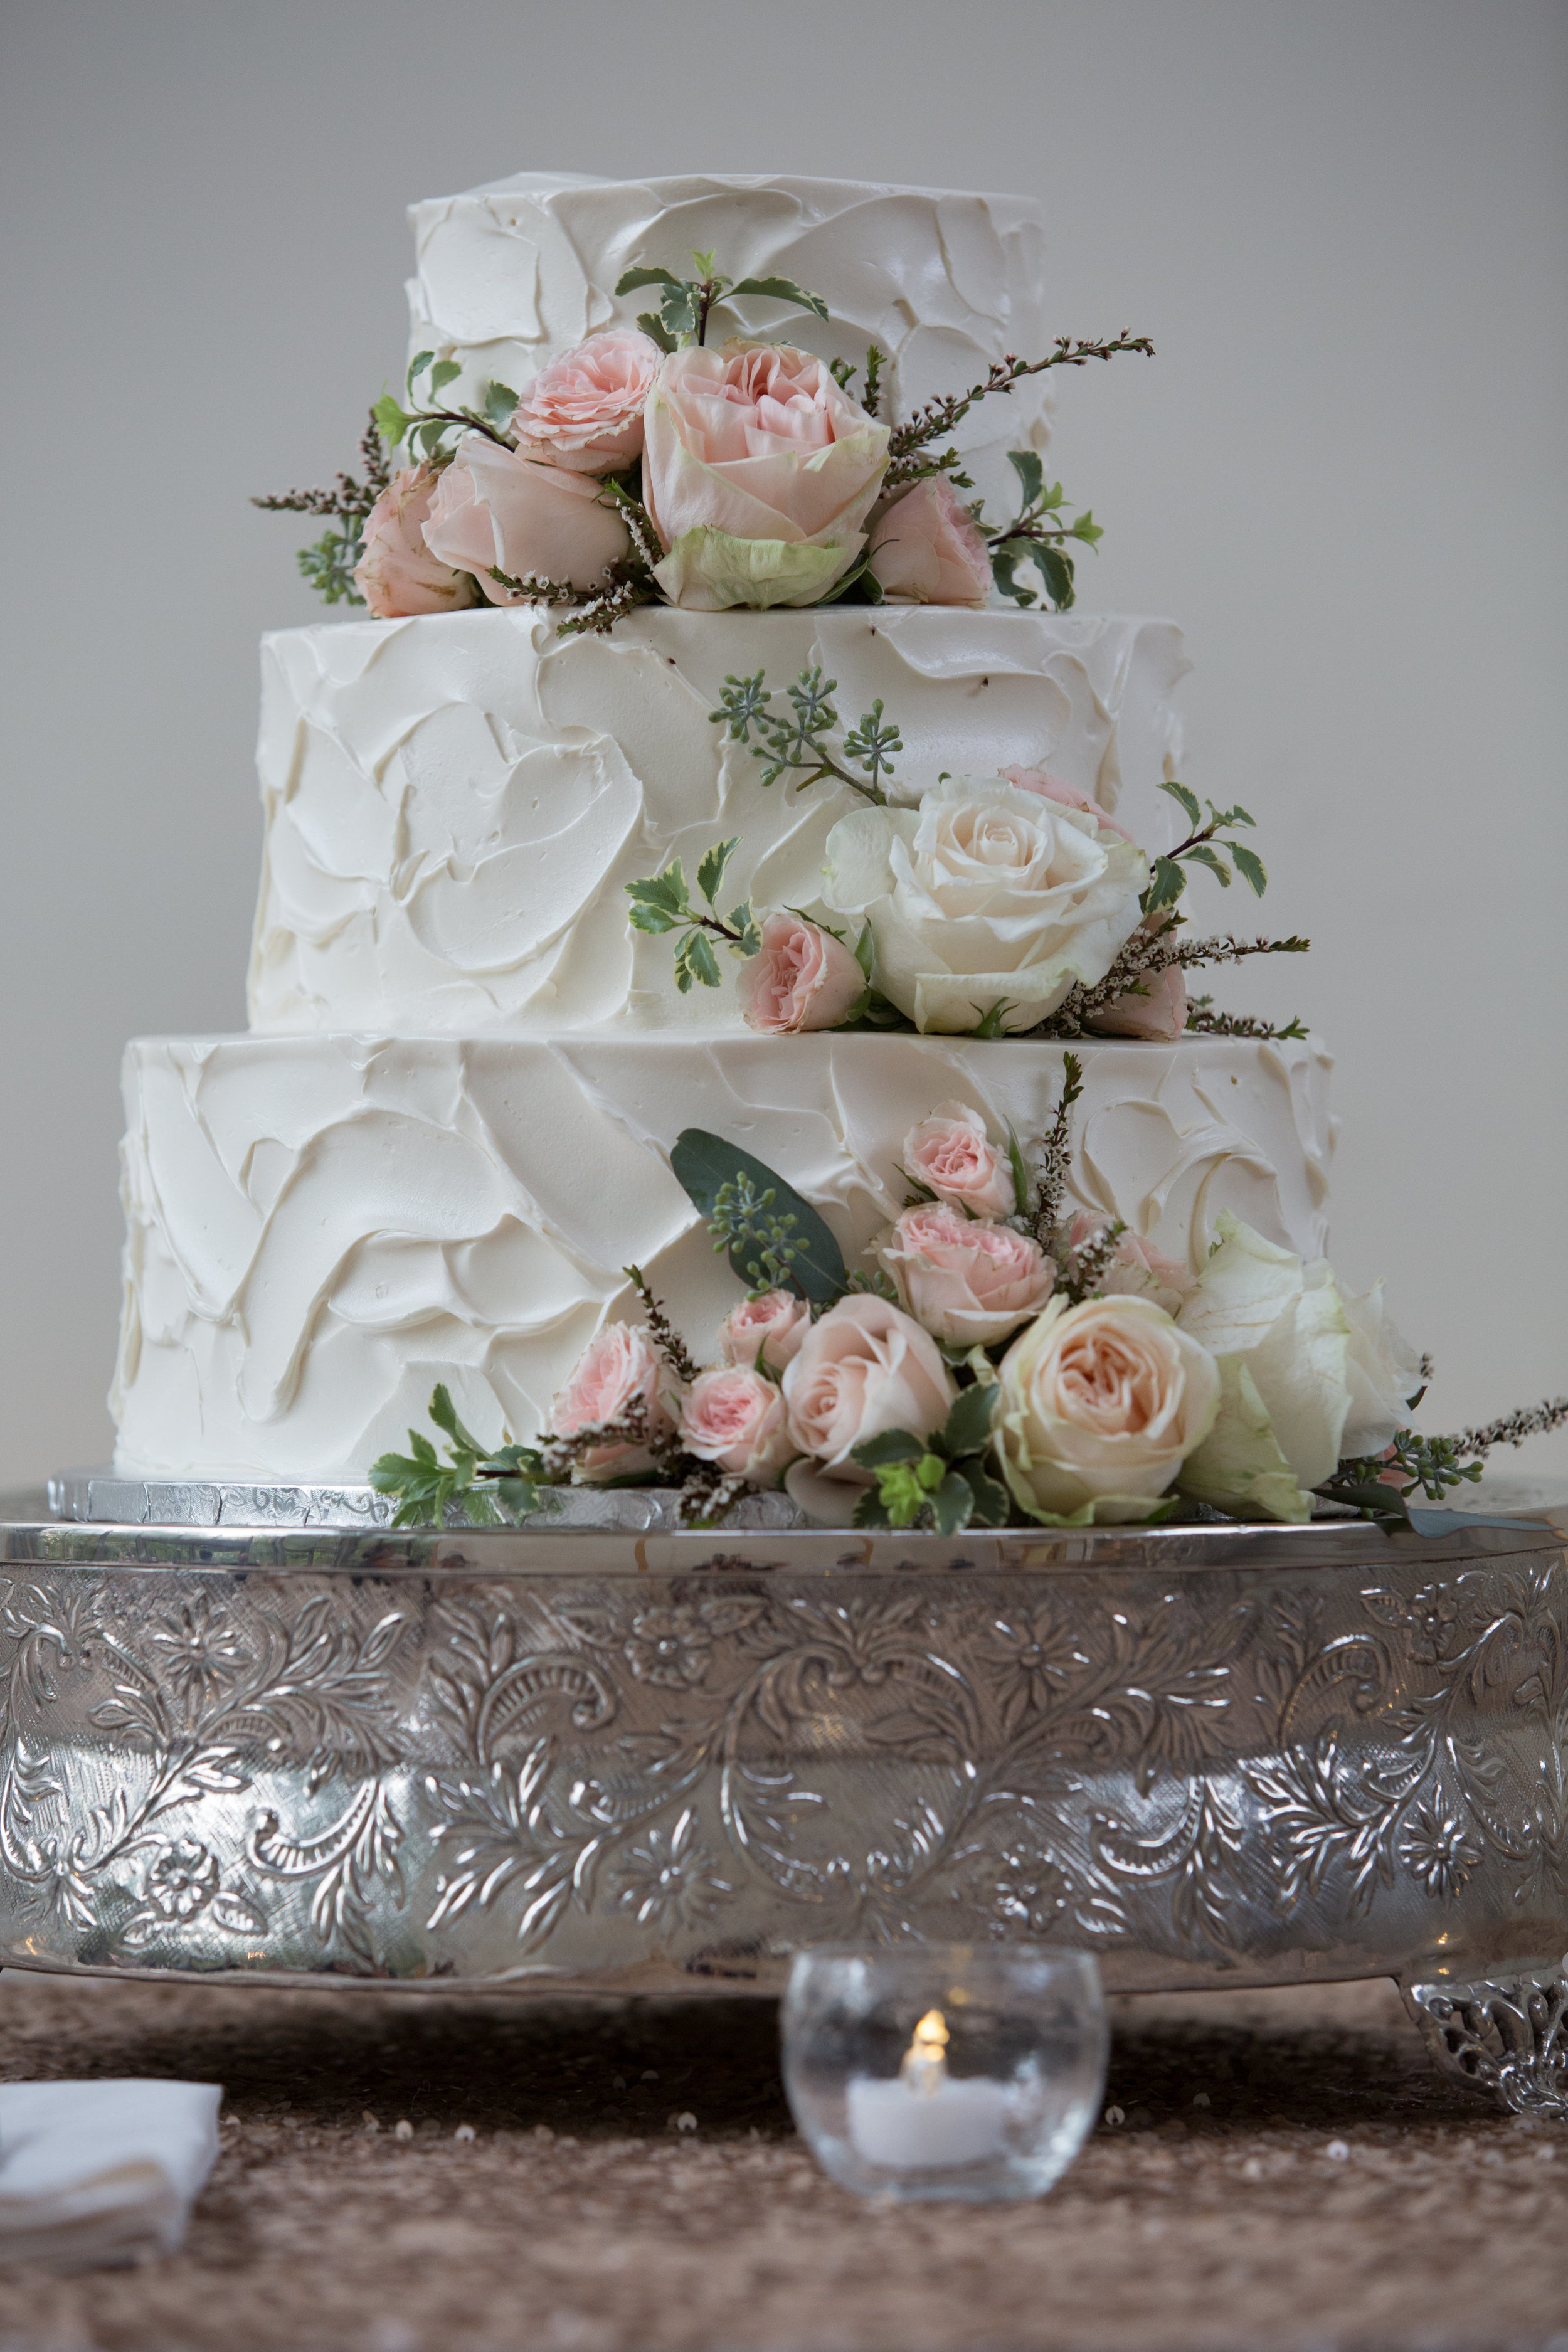 Wedding cake with garden roses and greenery